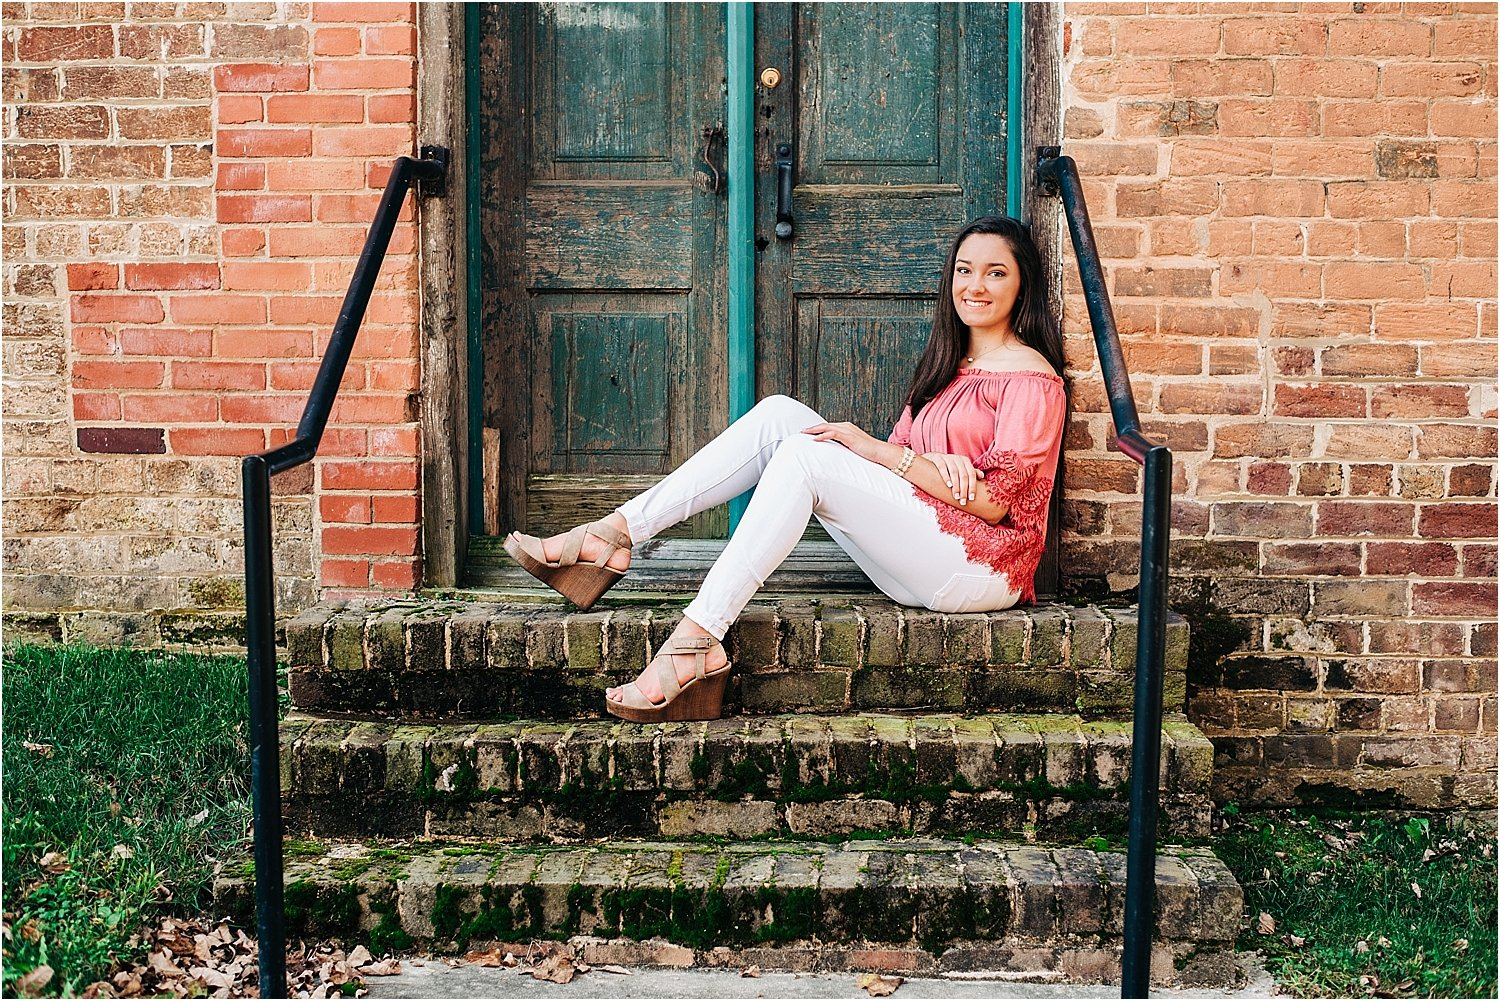 Love the colors and rustic vibe of this senior portrait.